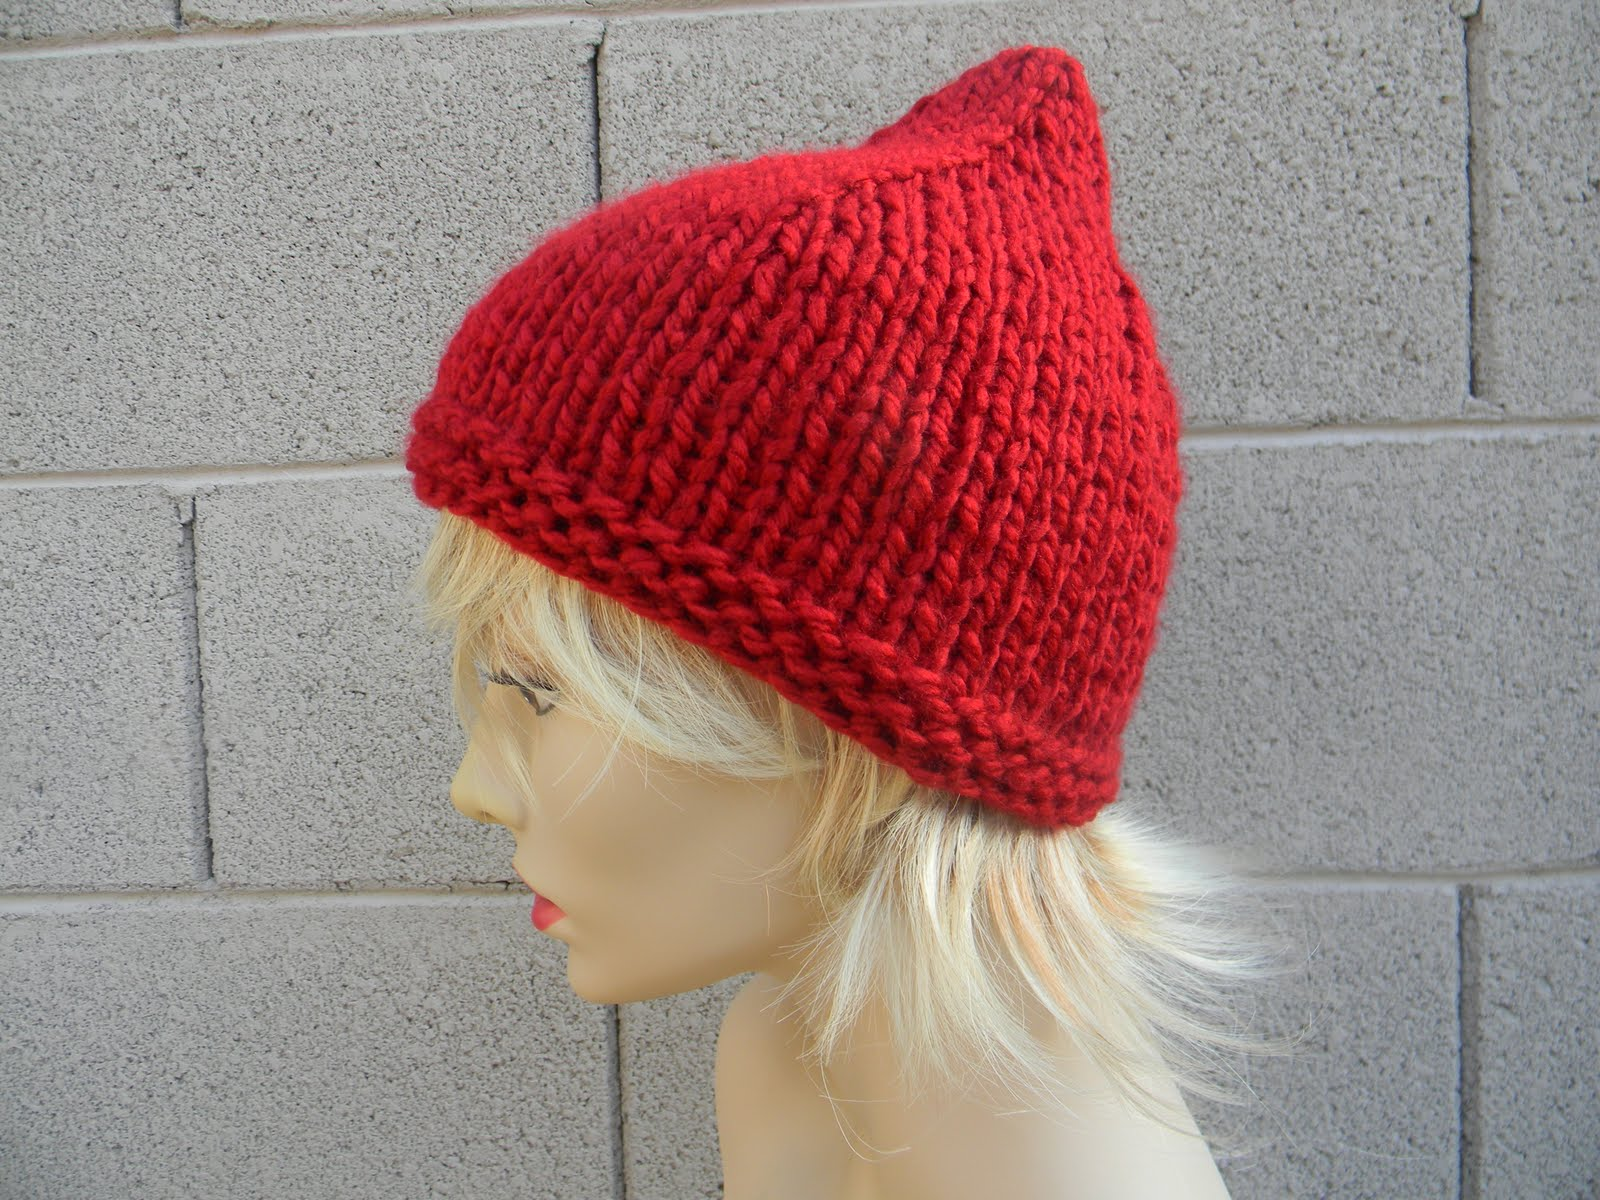 Knitted Beanie Patterns Magnificent Inspiration Ideas